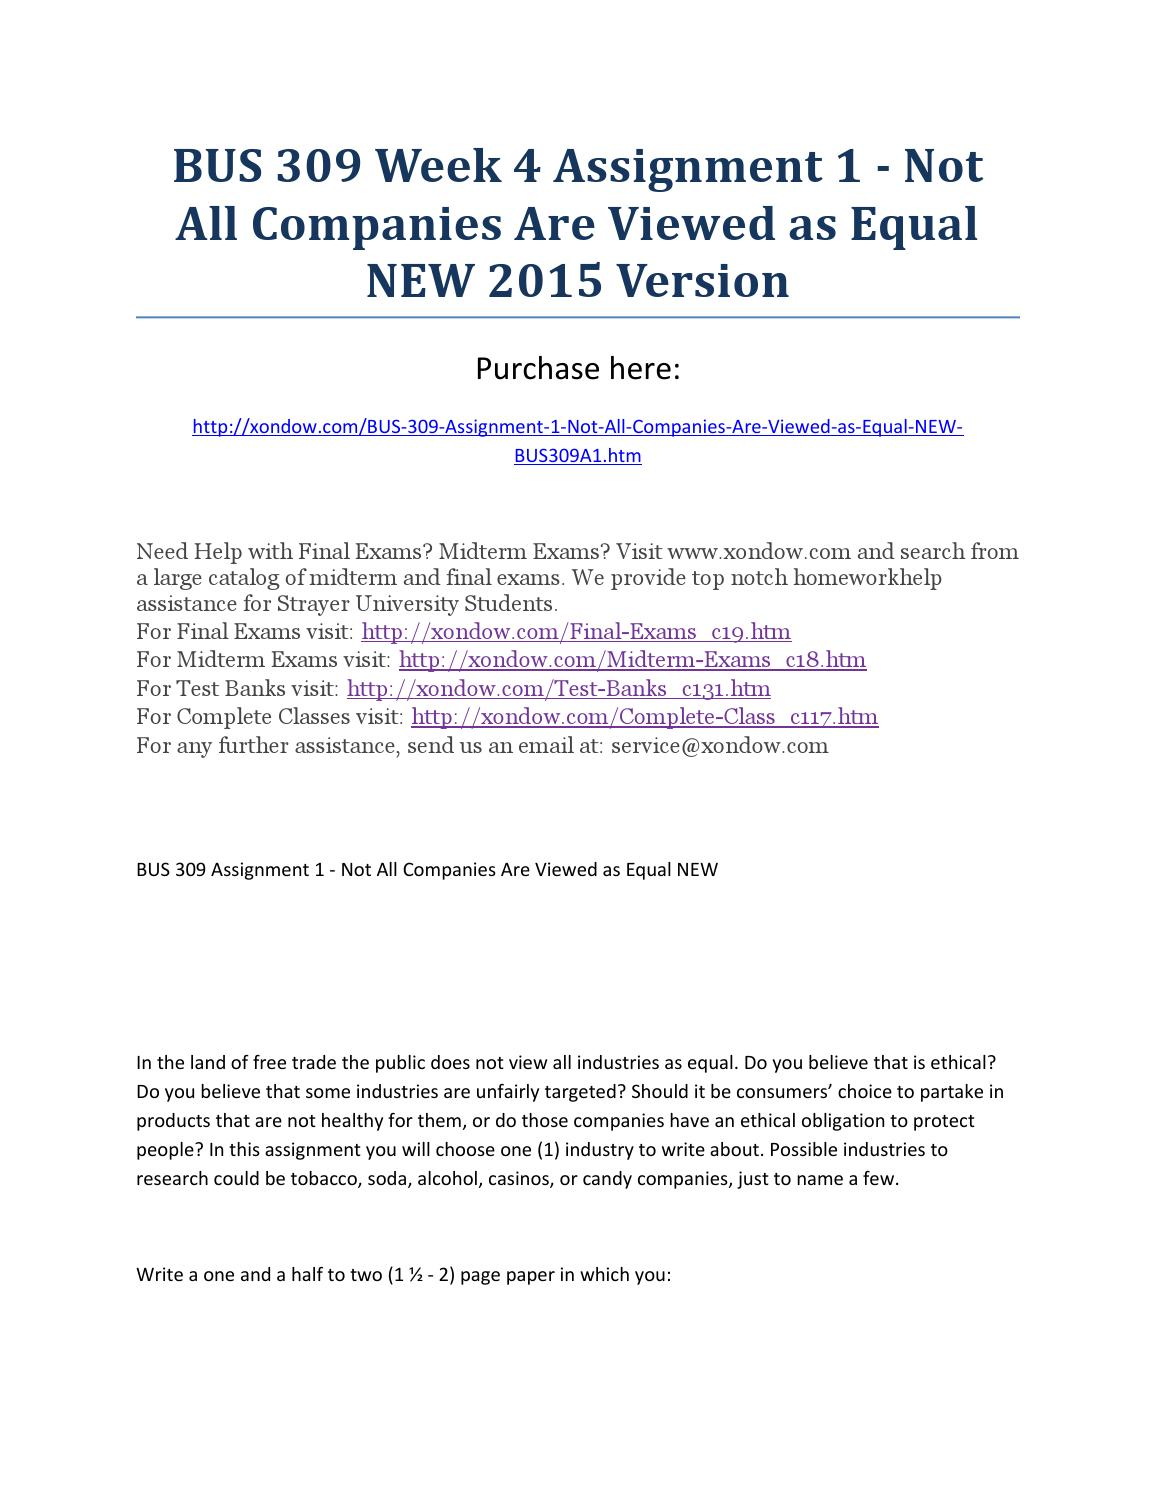 assignment 1: not all companies are viewed as equal Topic: not all companies are viewed as equal (business ethics) order description in the land of free trade, the public does not view all industries as equal.